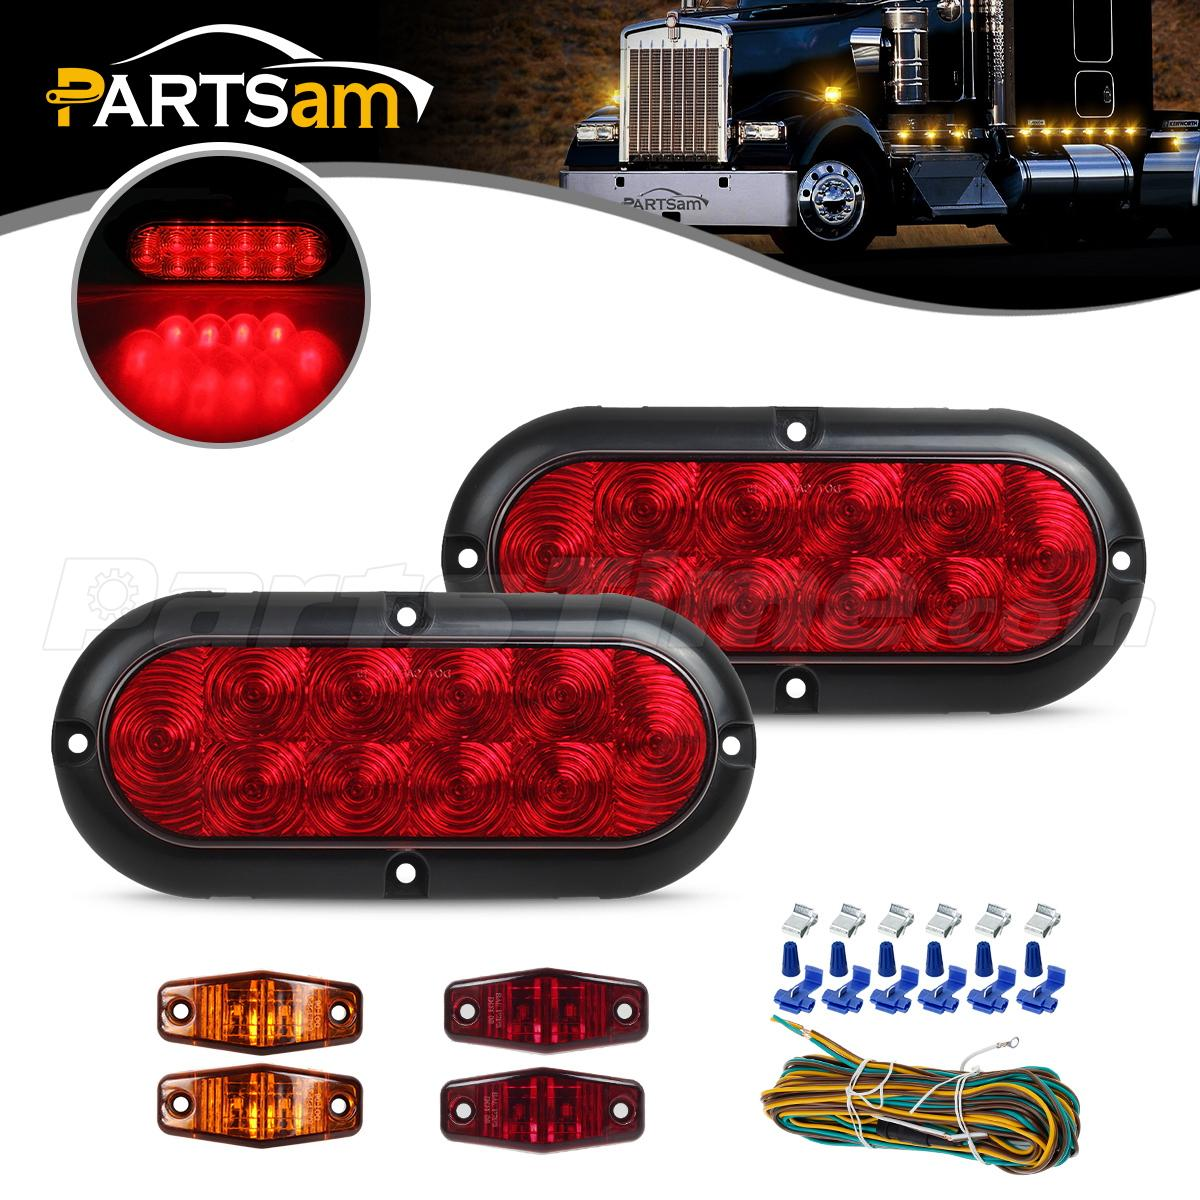 150984 2?p=ZXNvbmdib24=&s=t&rn=6272684 trailer boat led light kit,red stop turn tail,red amber side Wiring Multiple Lights at eliteediting.co